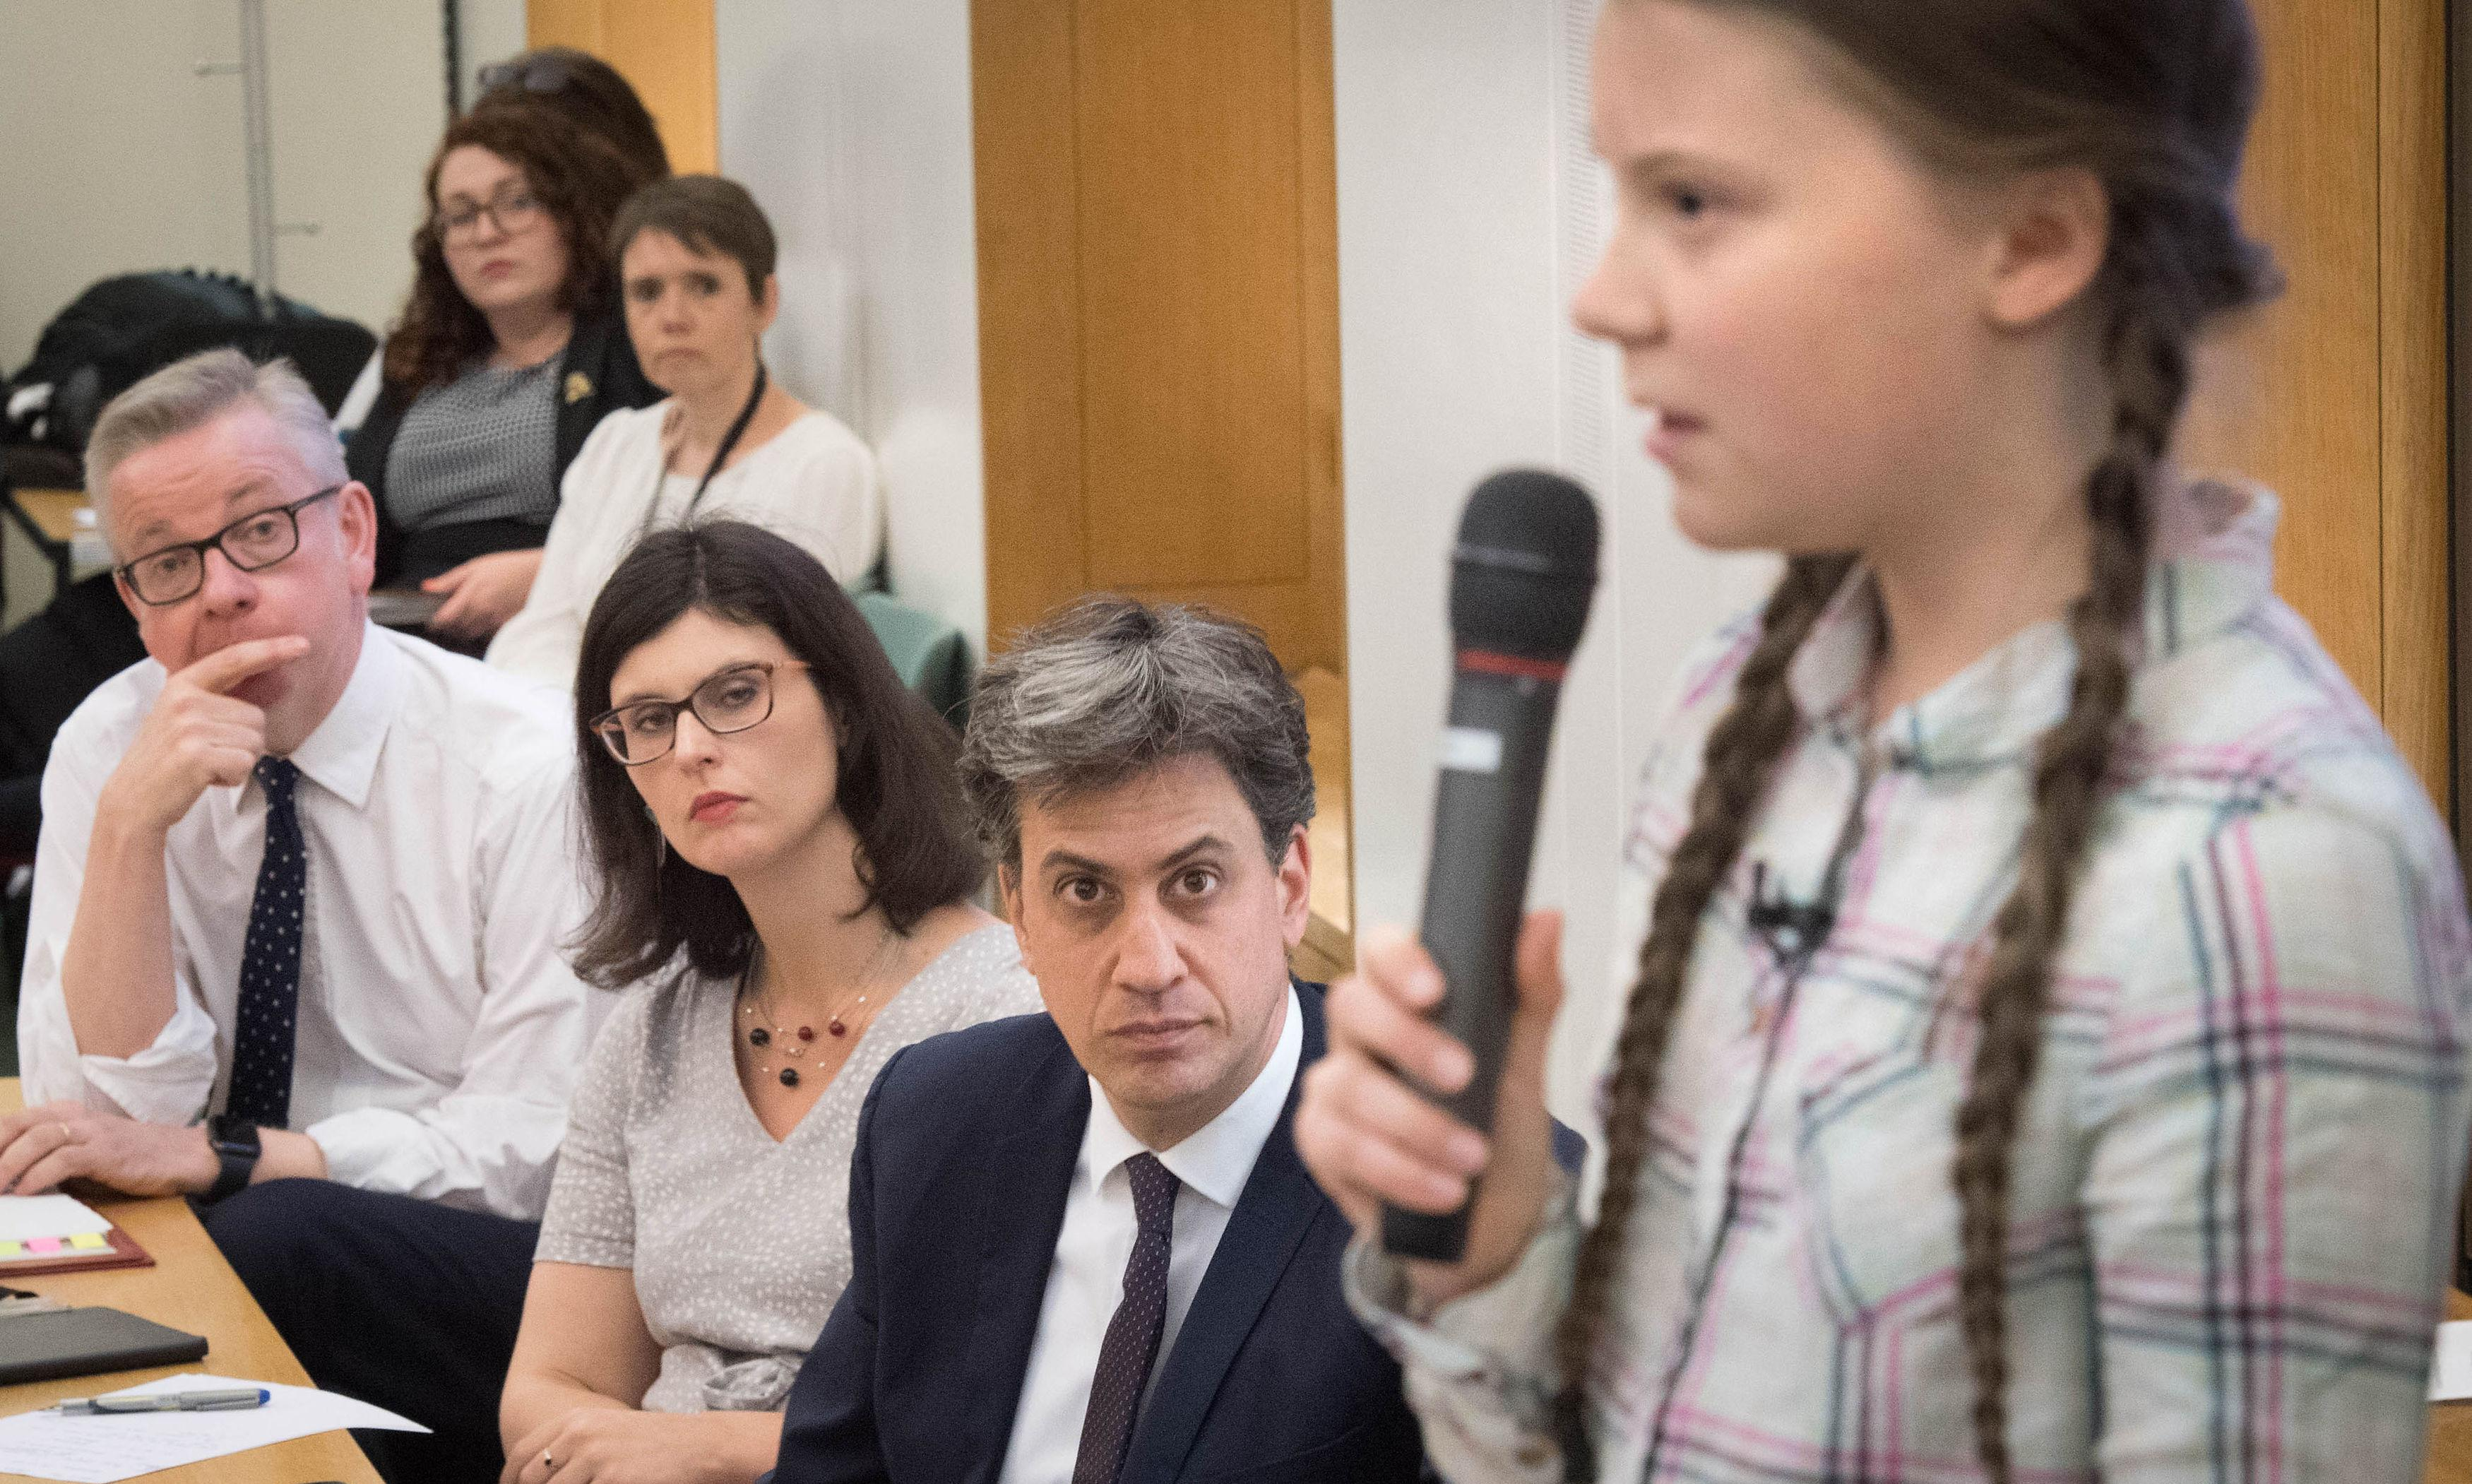 The Greta Thunberg effect: at last, MPs focus on climate change